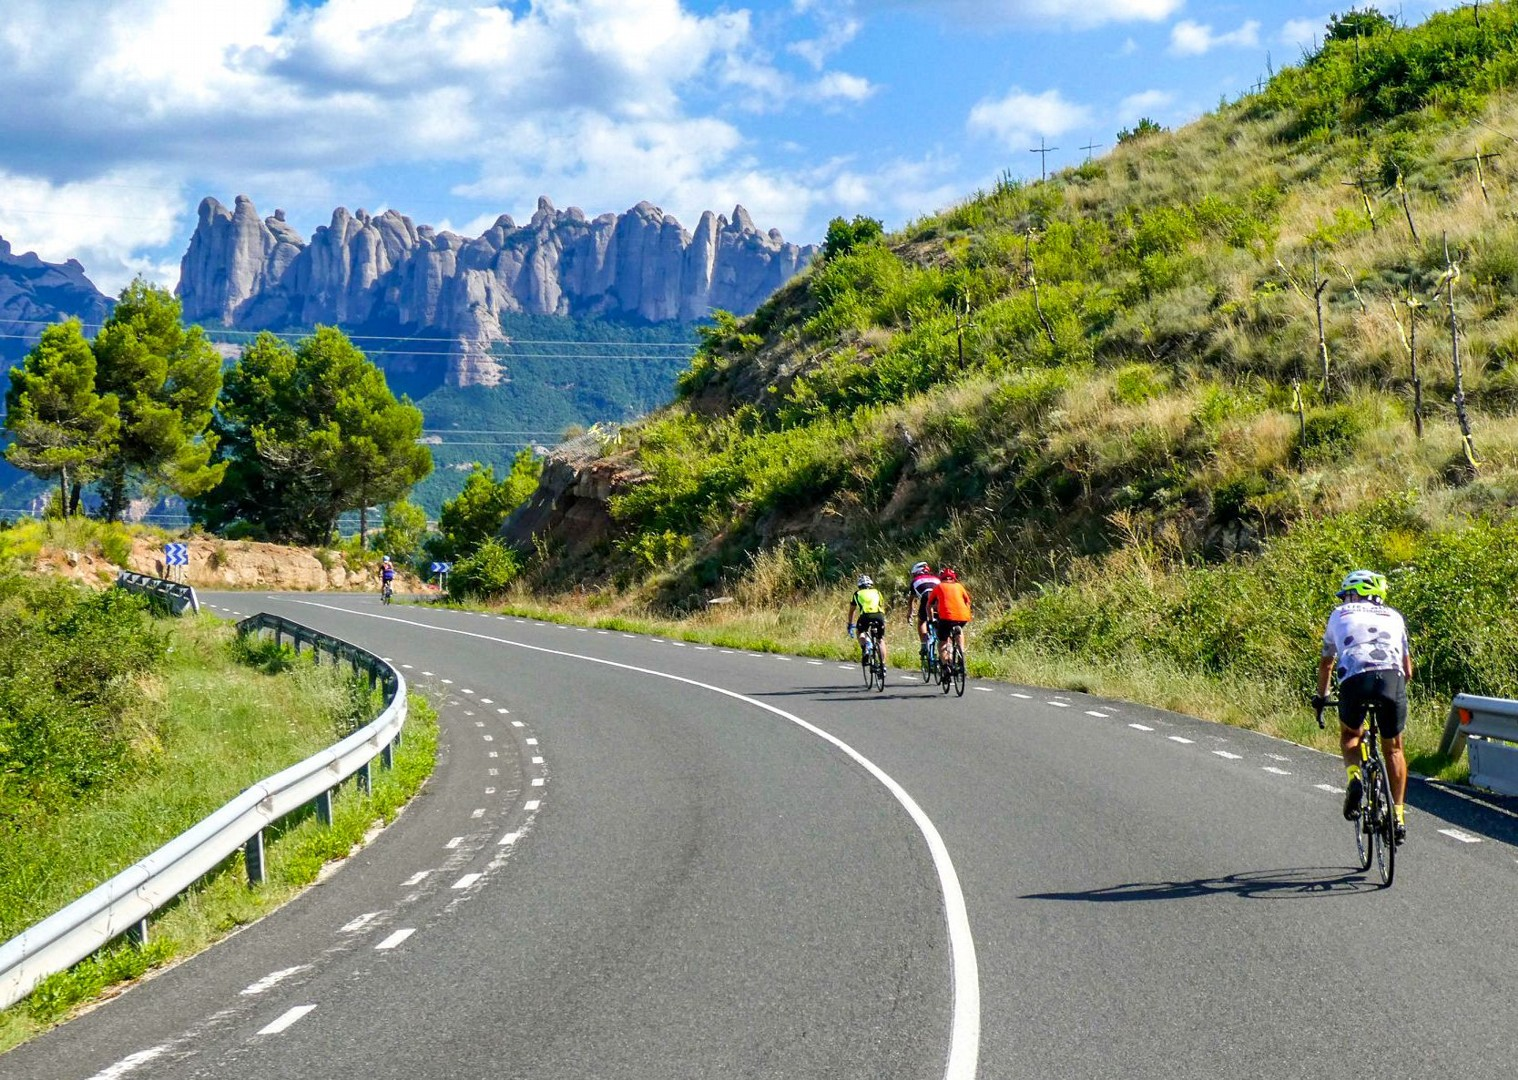 northern-spain-guided-road-cycling-holiday-bilbao-to-barcelona.jpg - Northern Spain - Bilbao to Barcelona - Guided Road Cycling Holiday - Road Cycling